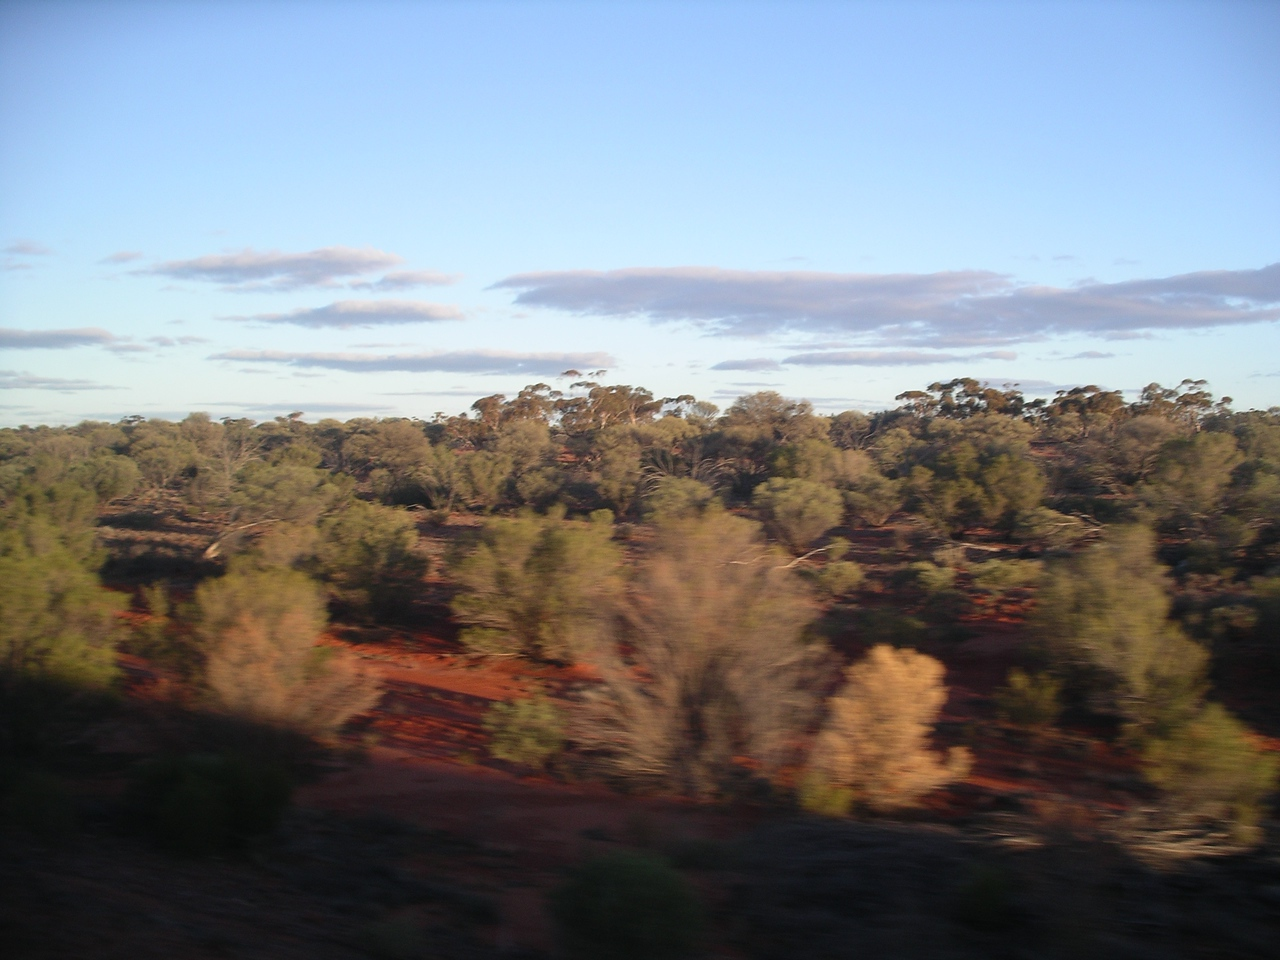 The Nullarbor Plain • Taken on the Indian Pacific Railway.